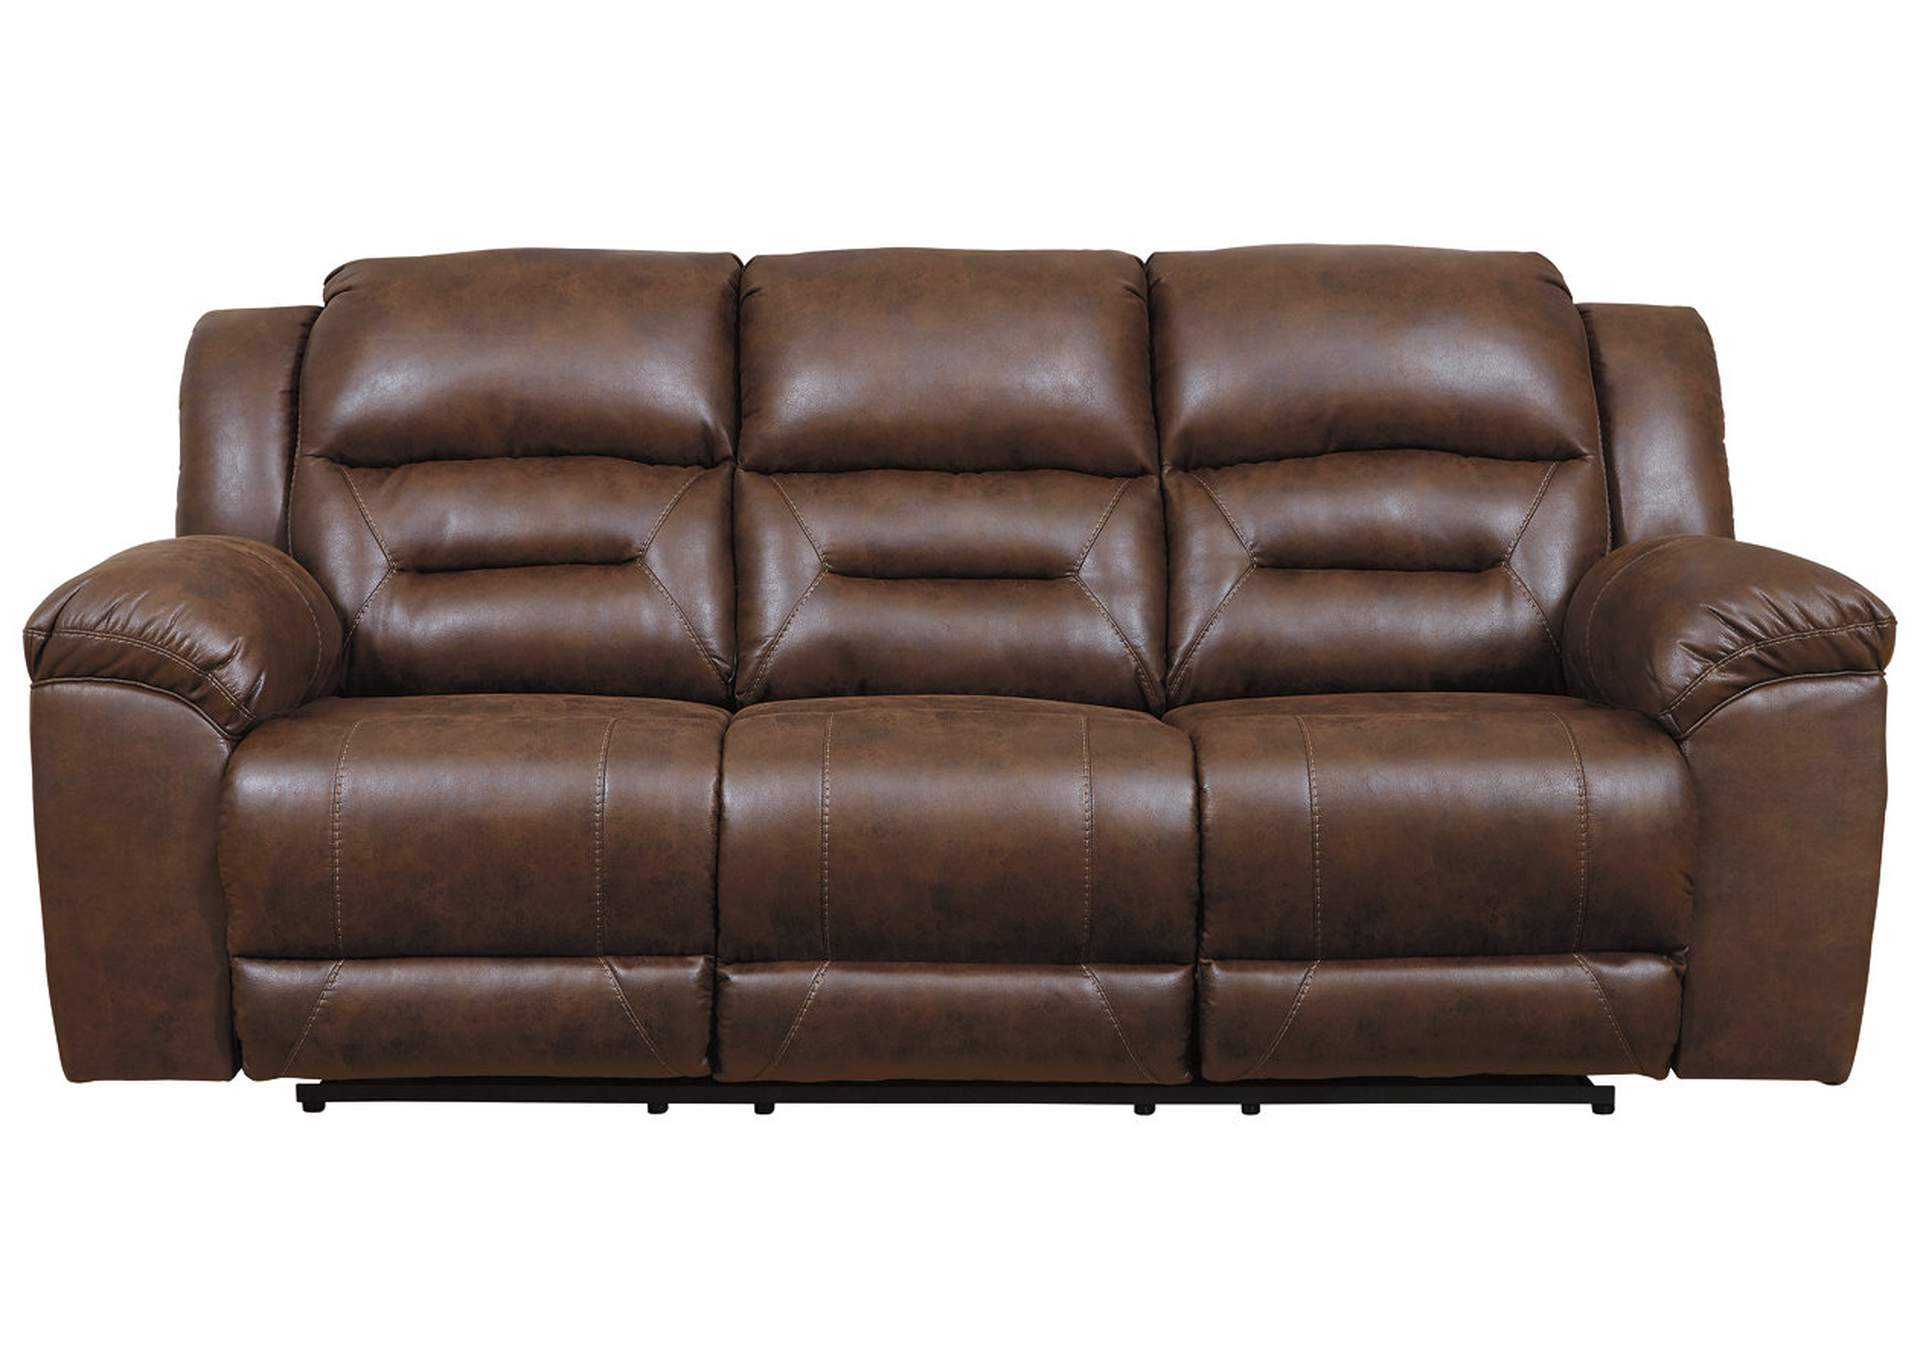 Stoneland Chocolate Power Reclining Sofa,Signature Design By Ashley